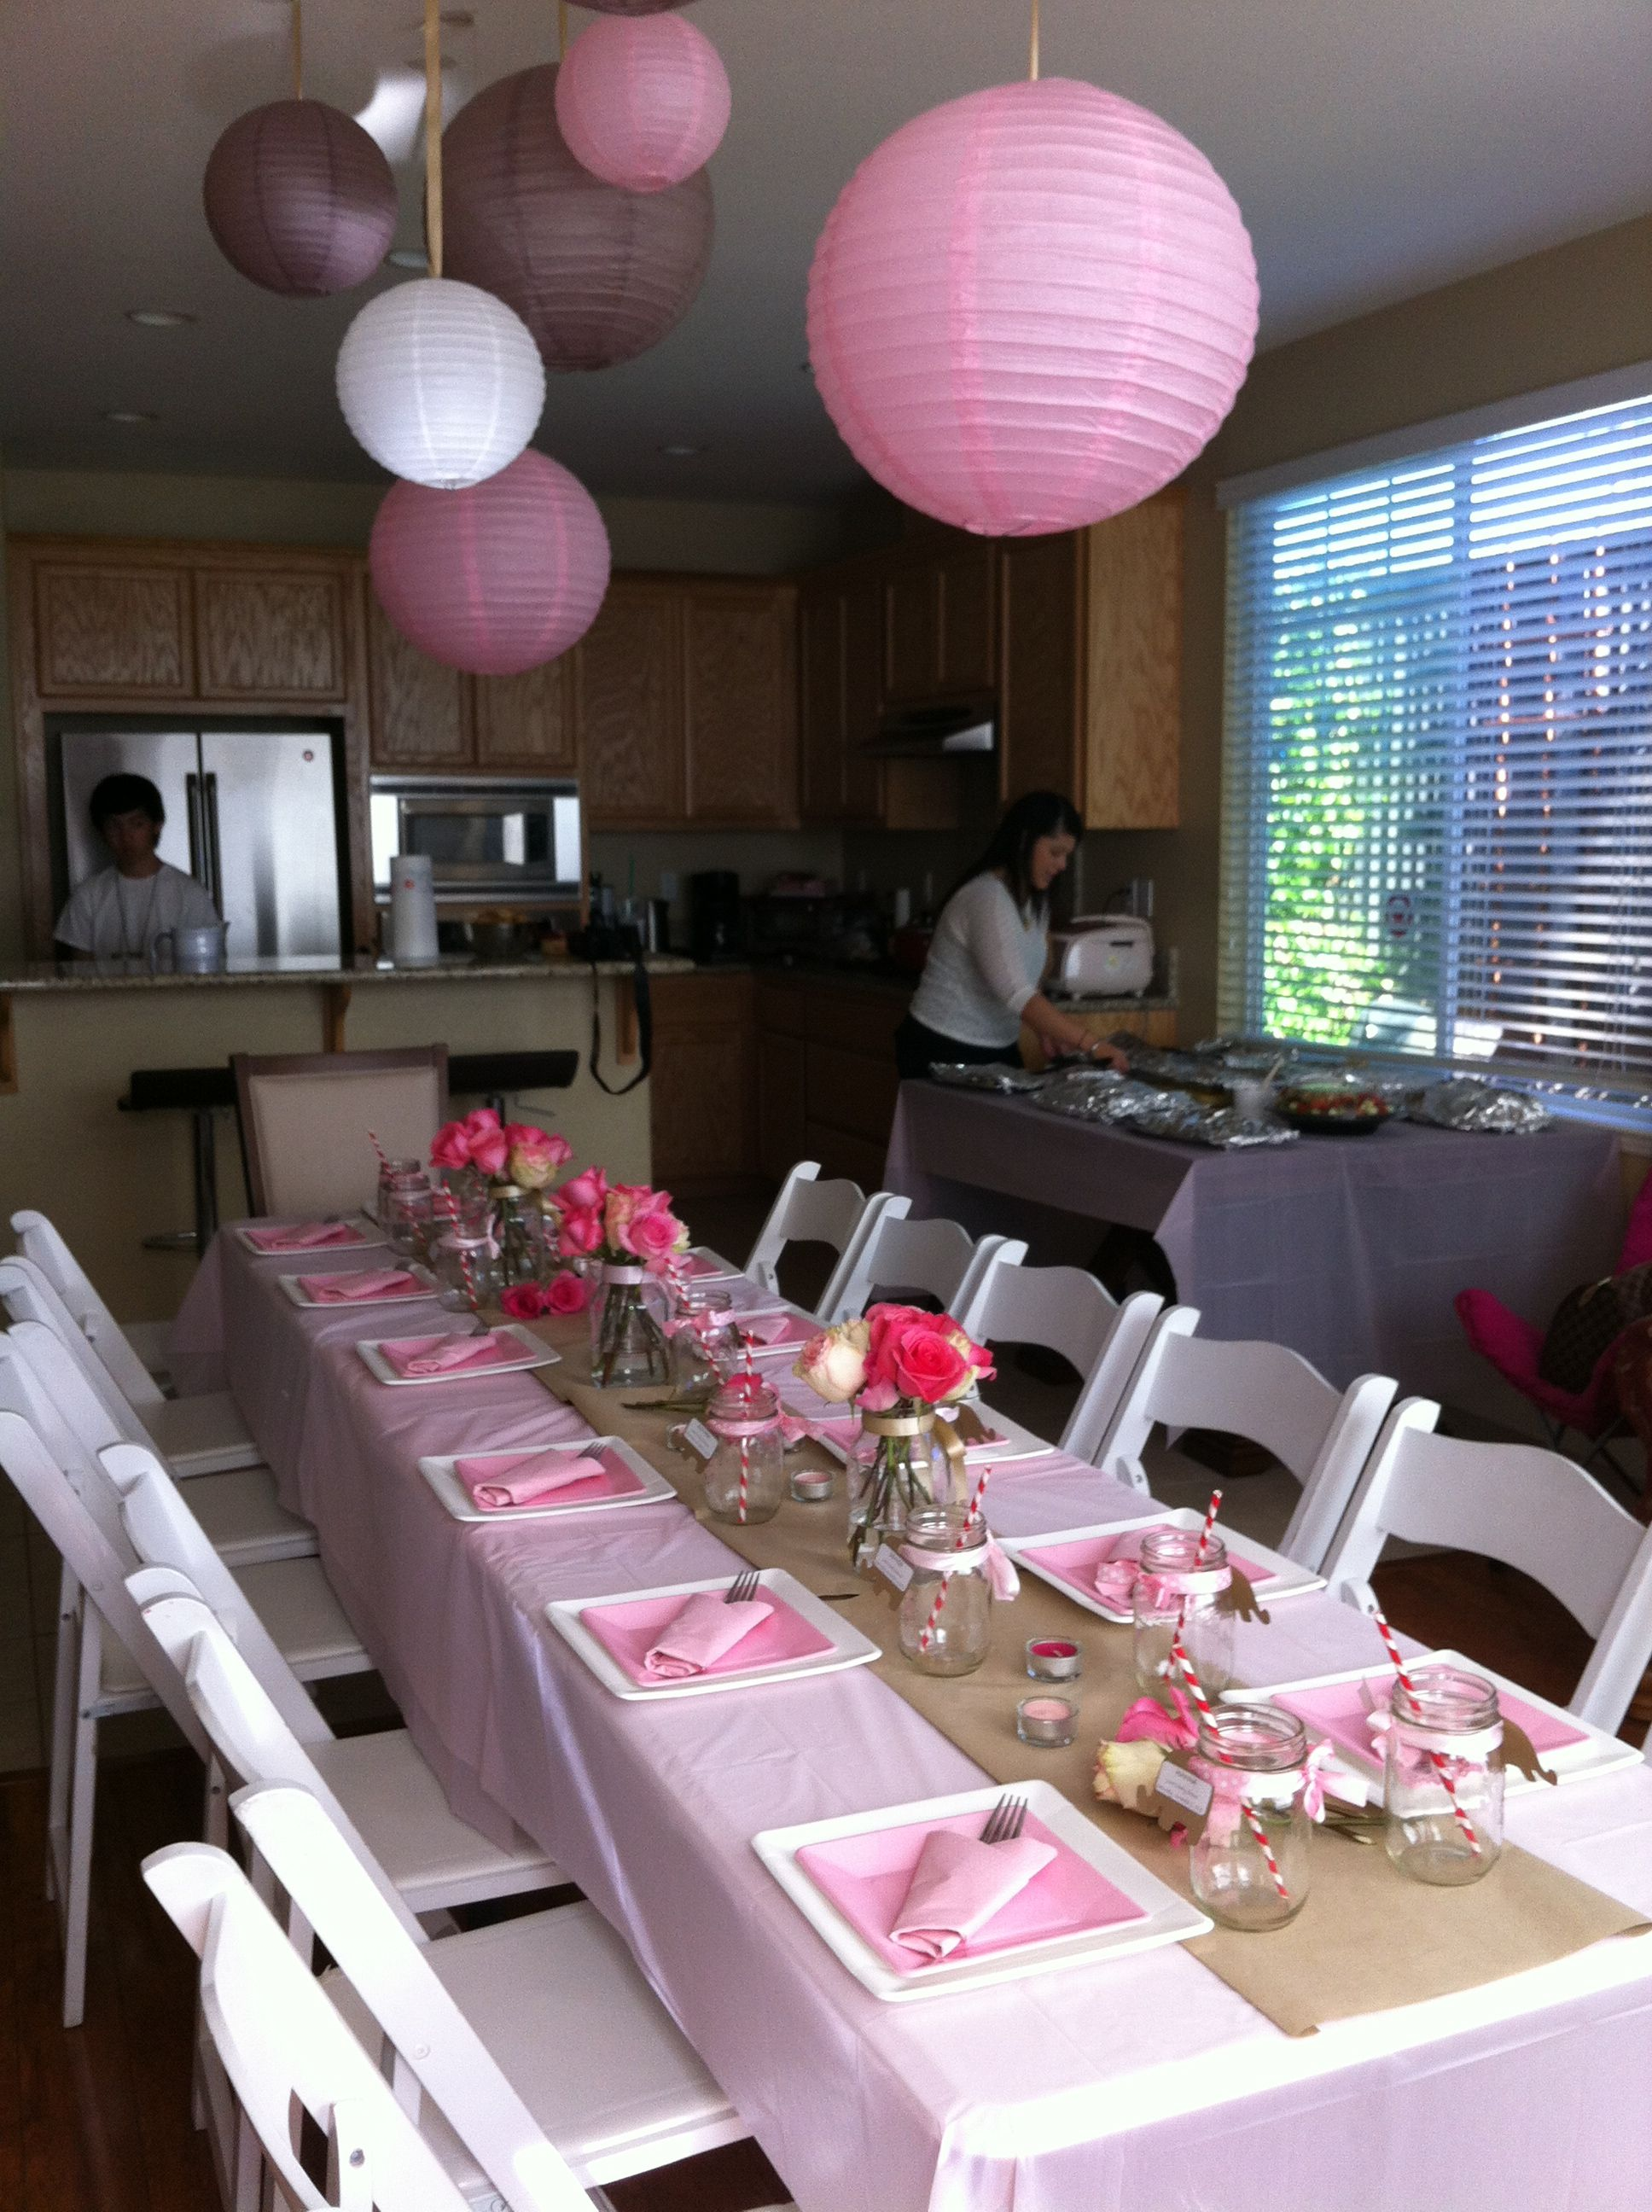 Junau0027s Baby Shower Table Setting~ Theme: Pink, Tan, White And Elephants